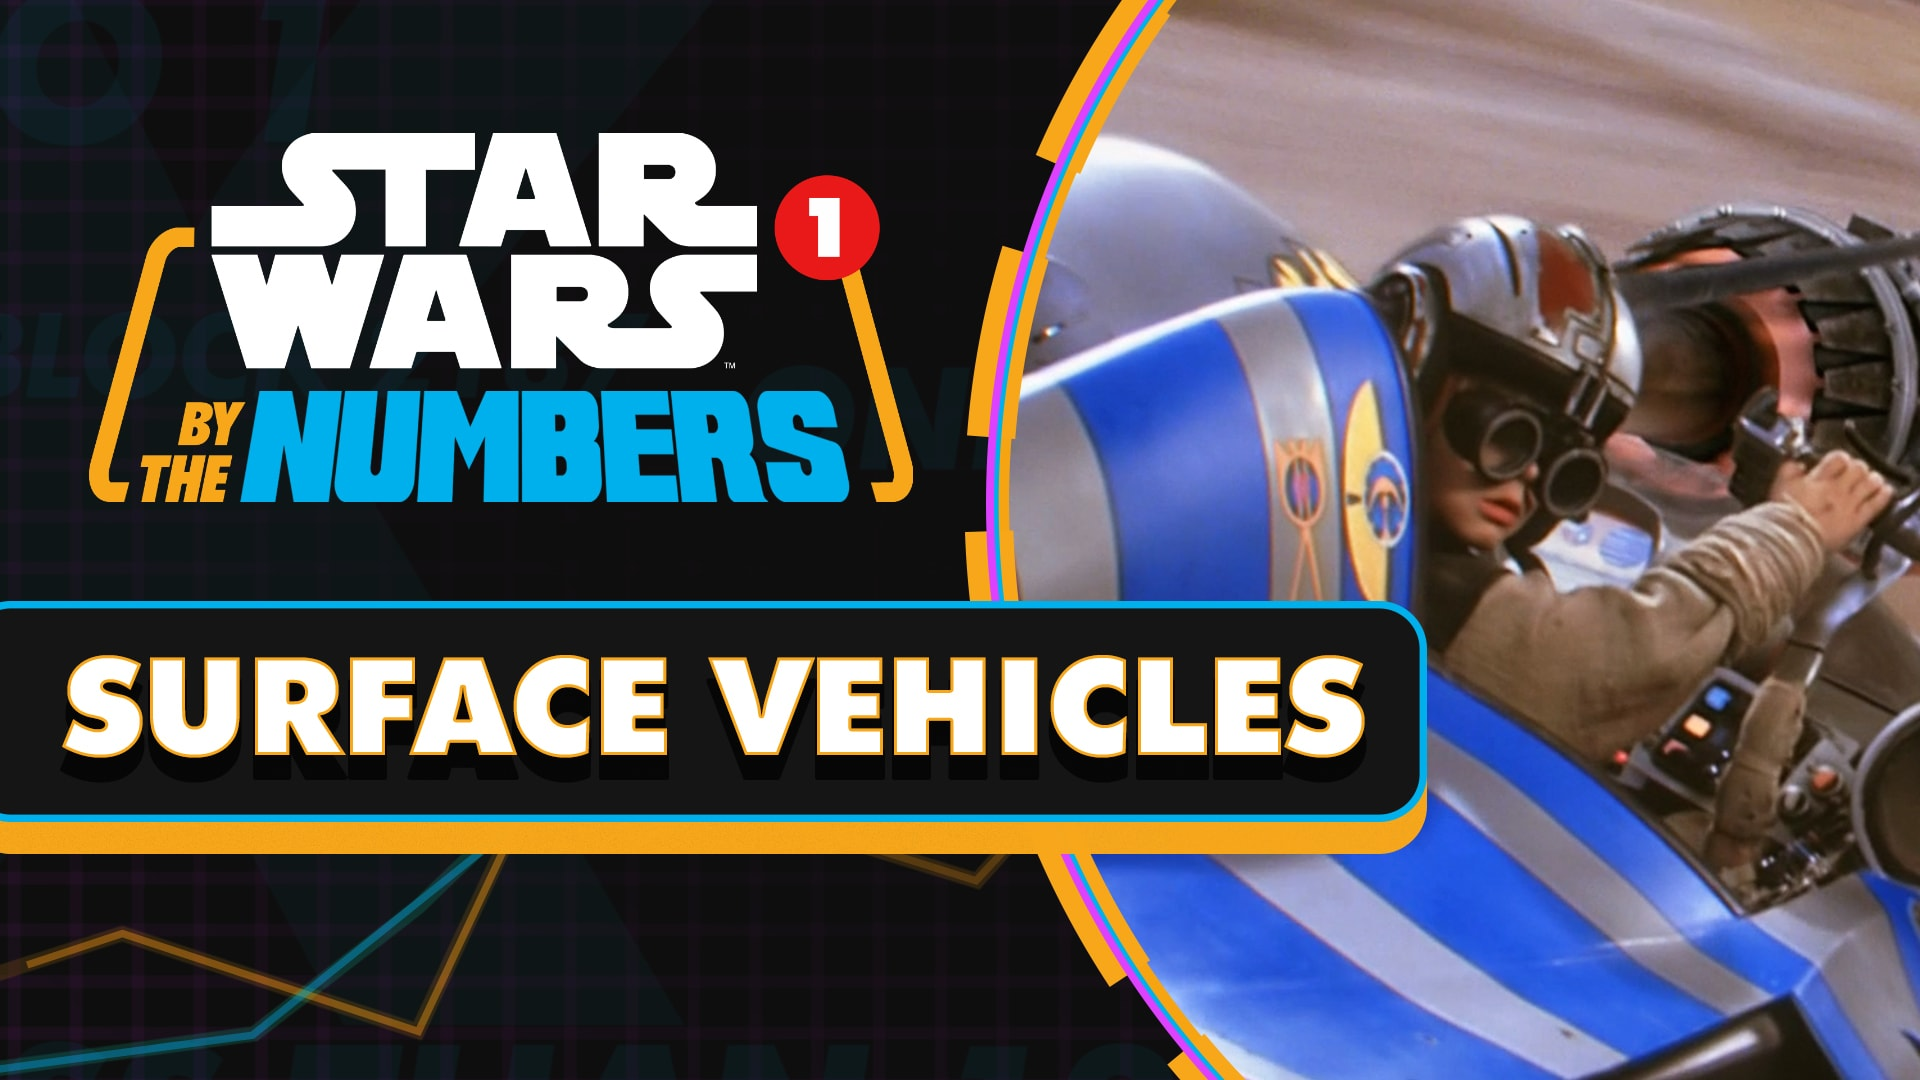 Every Surface Vehicle in Star Wars Movies | Star Wars By the Numbers